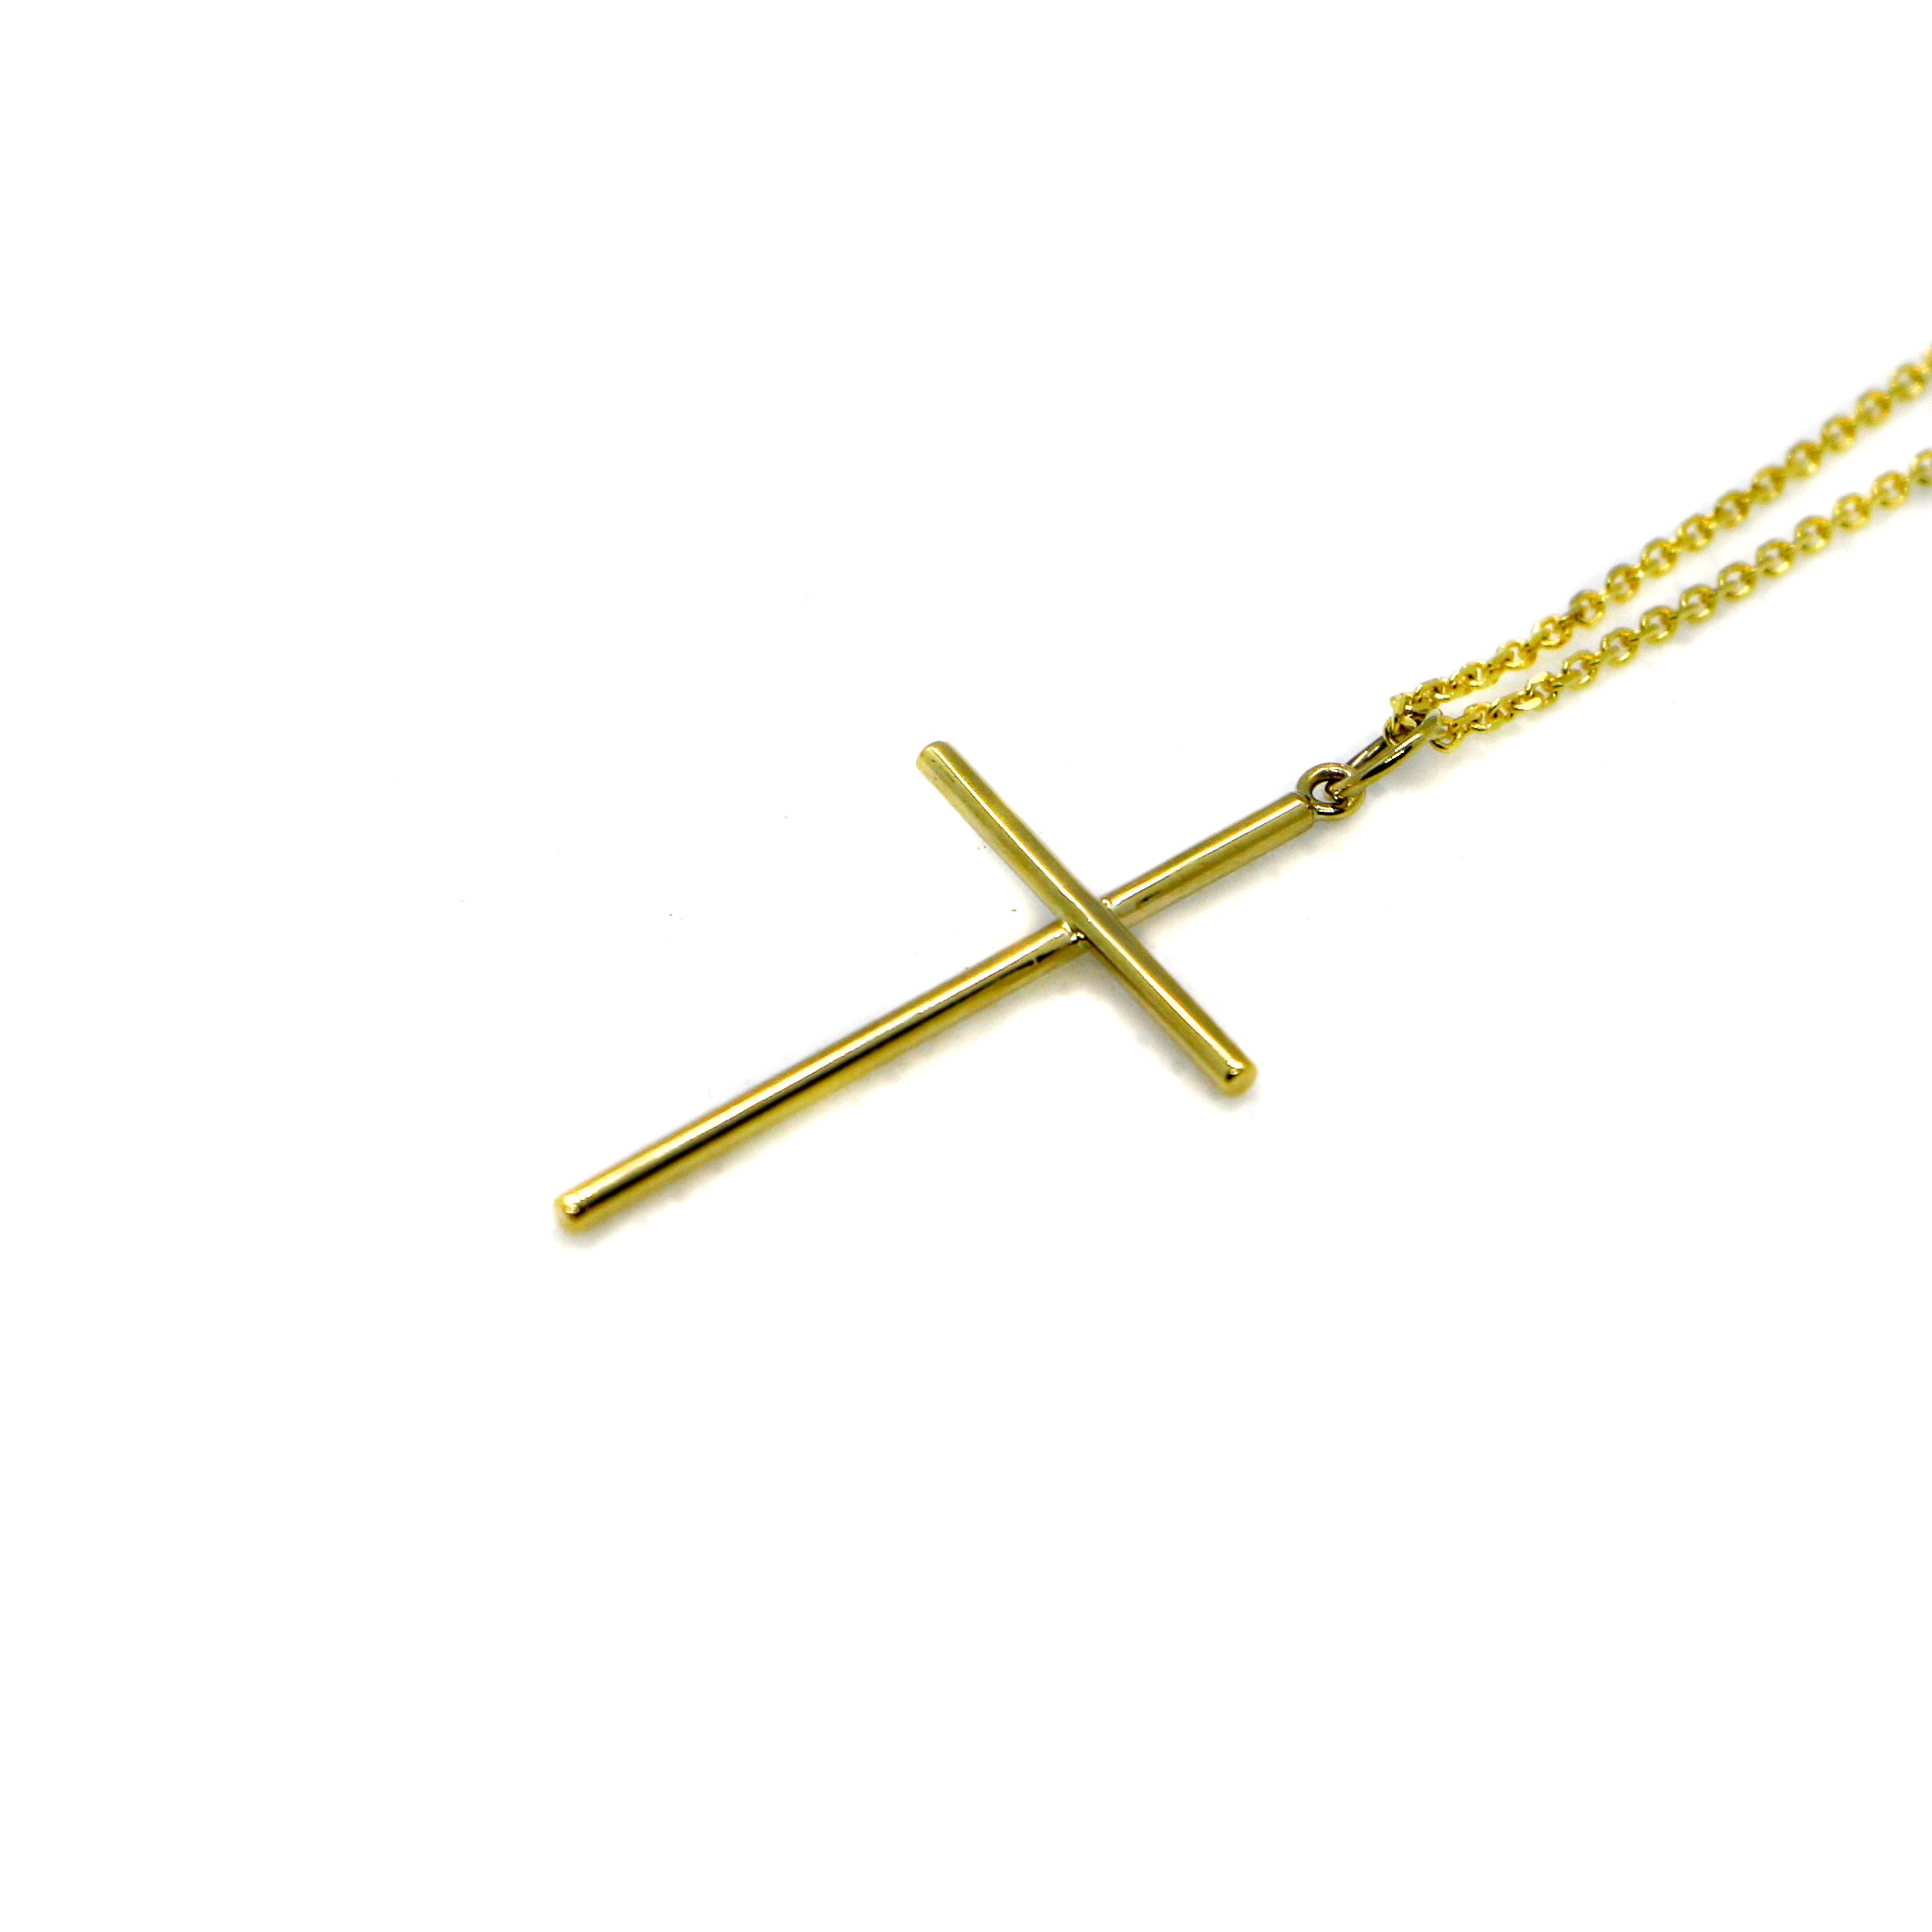 Hand Made Large 14k Yellow Gold Cross Pendant